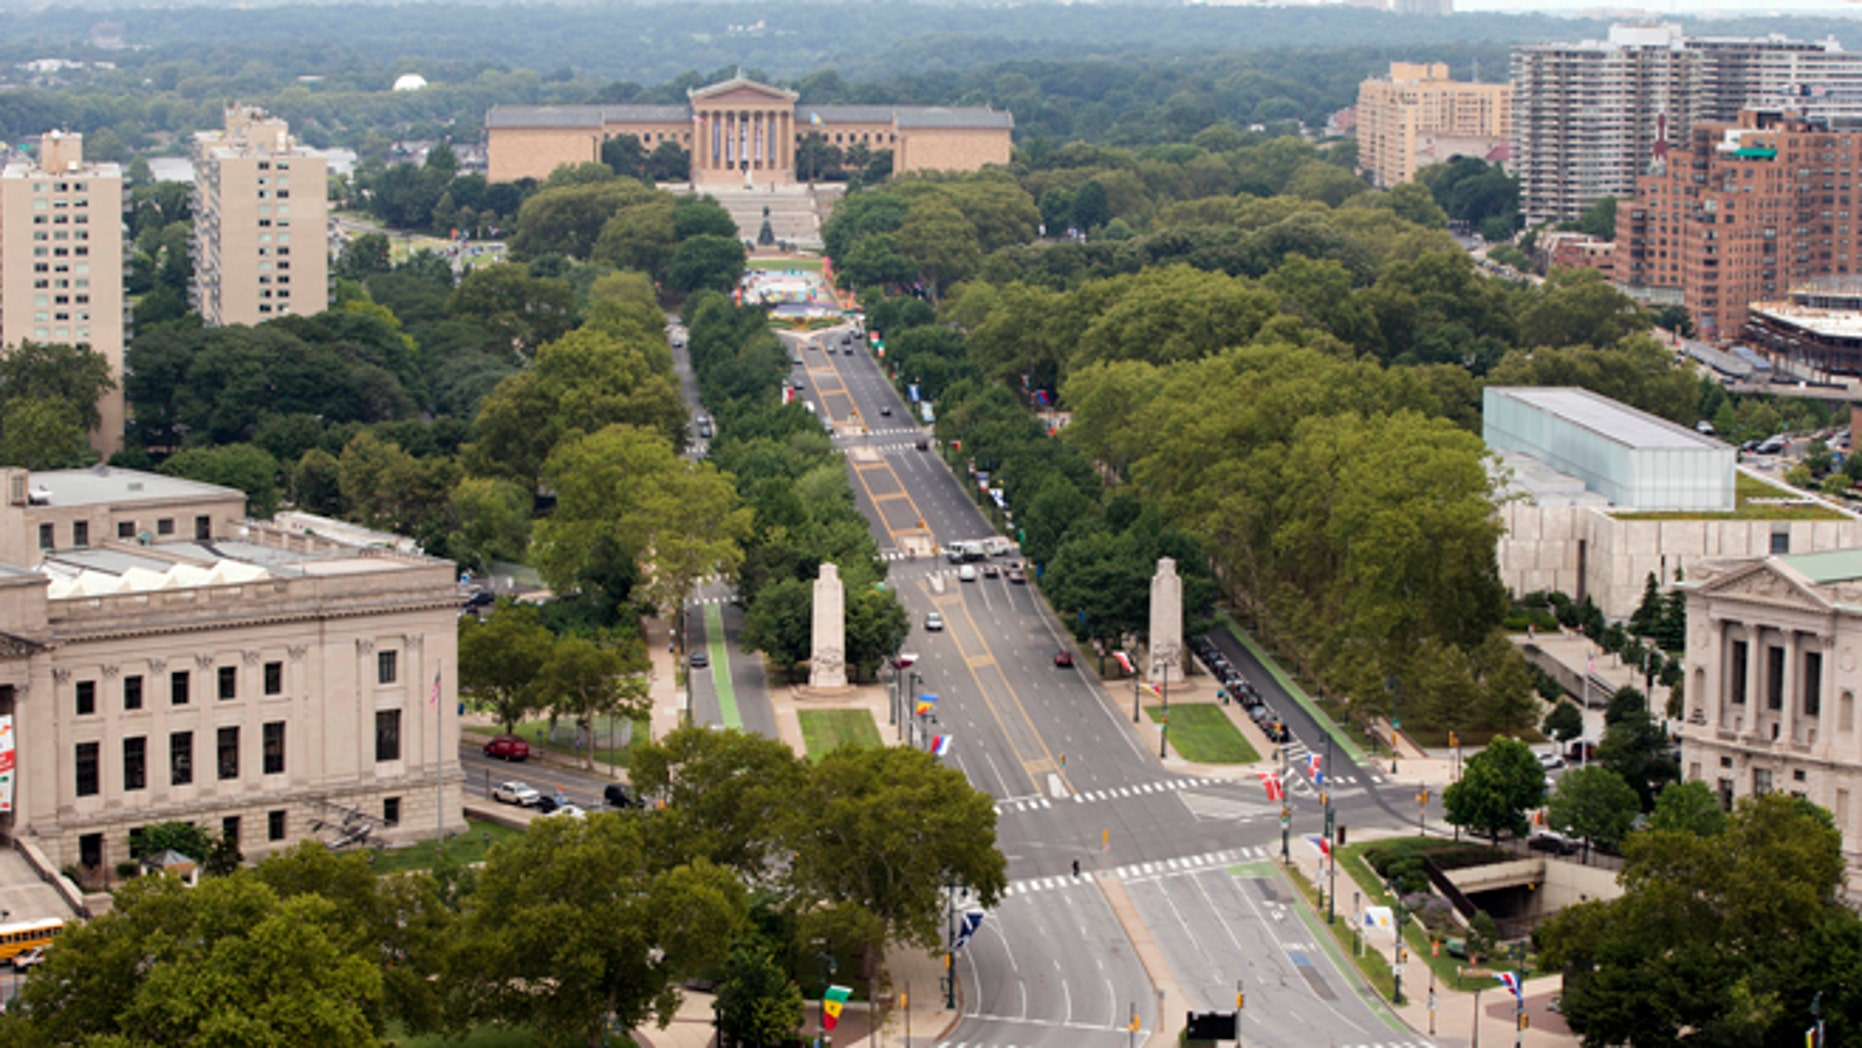 Viewed from the Embassy Suites hotel traffic moves along the Benjamin Franklin Parkway leading to the Philadelphia Museum of Art, Thursday, July 30, 2015, in Philadelphia. On the parkway Pope Francis is scheduled to visit The World Meeting of Families' festival and celebrate a Mass during his visit to the United States. (AP Photo/Matt Rourke)